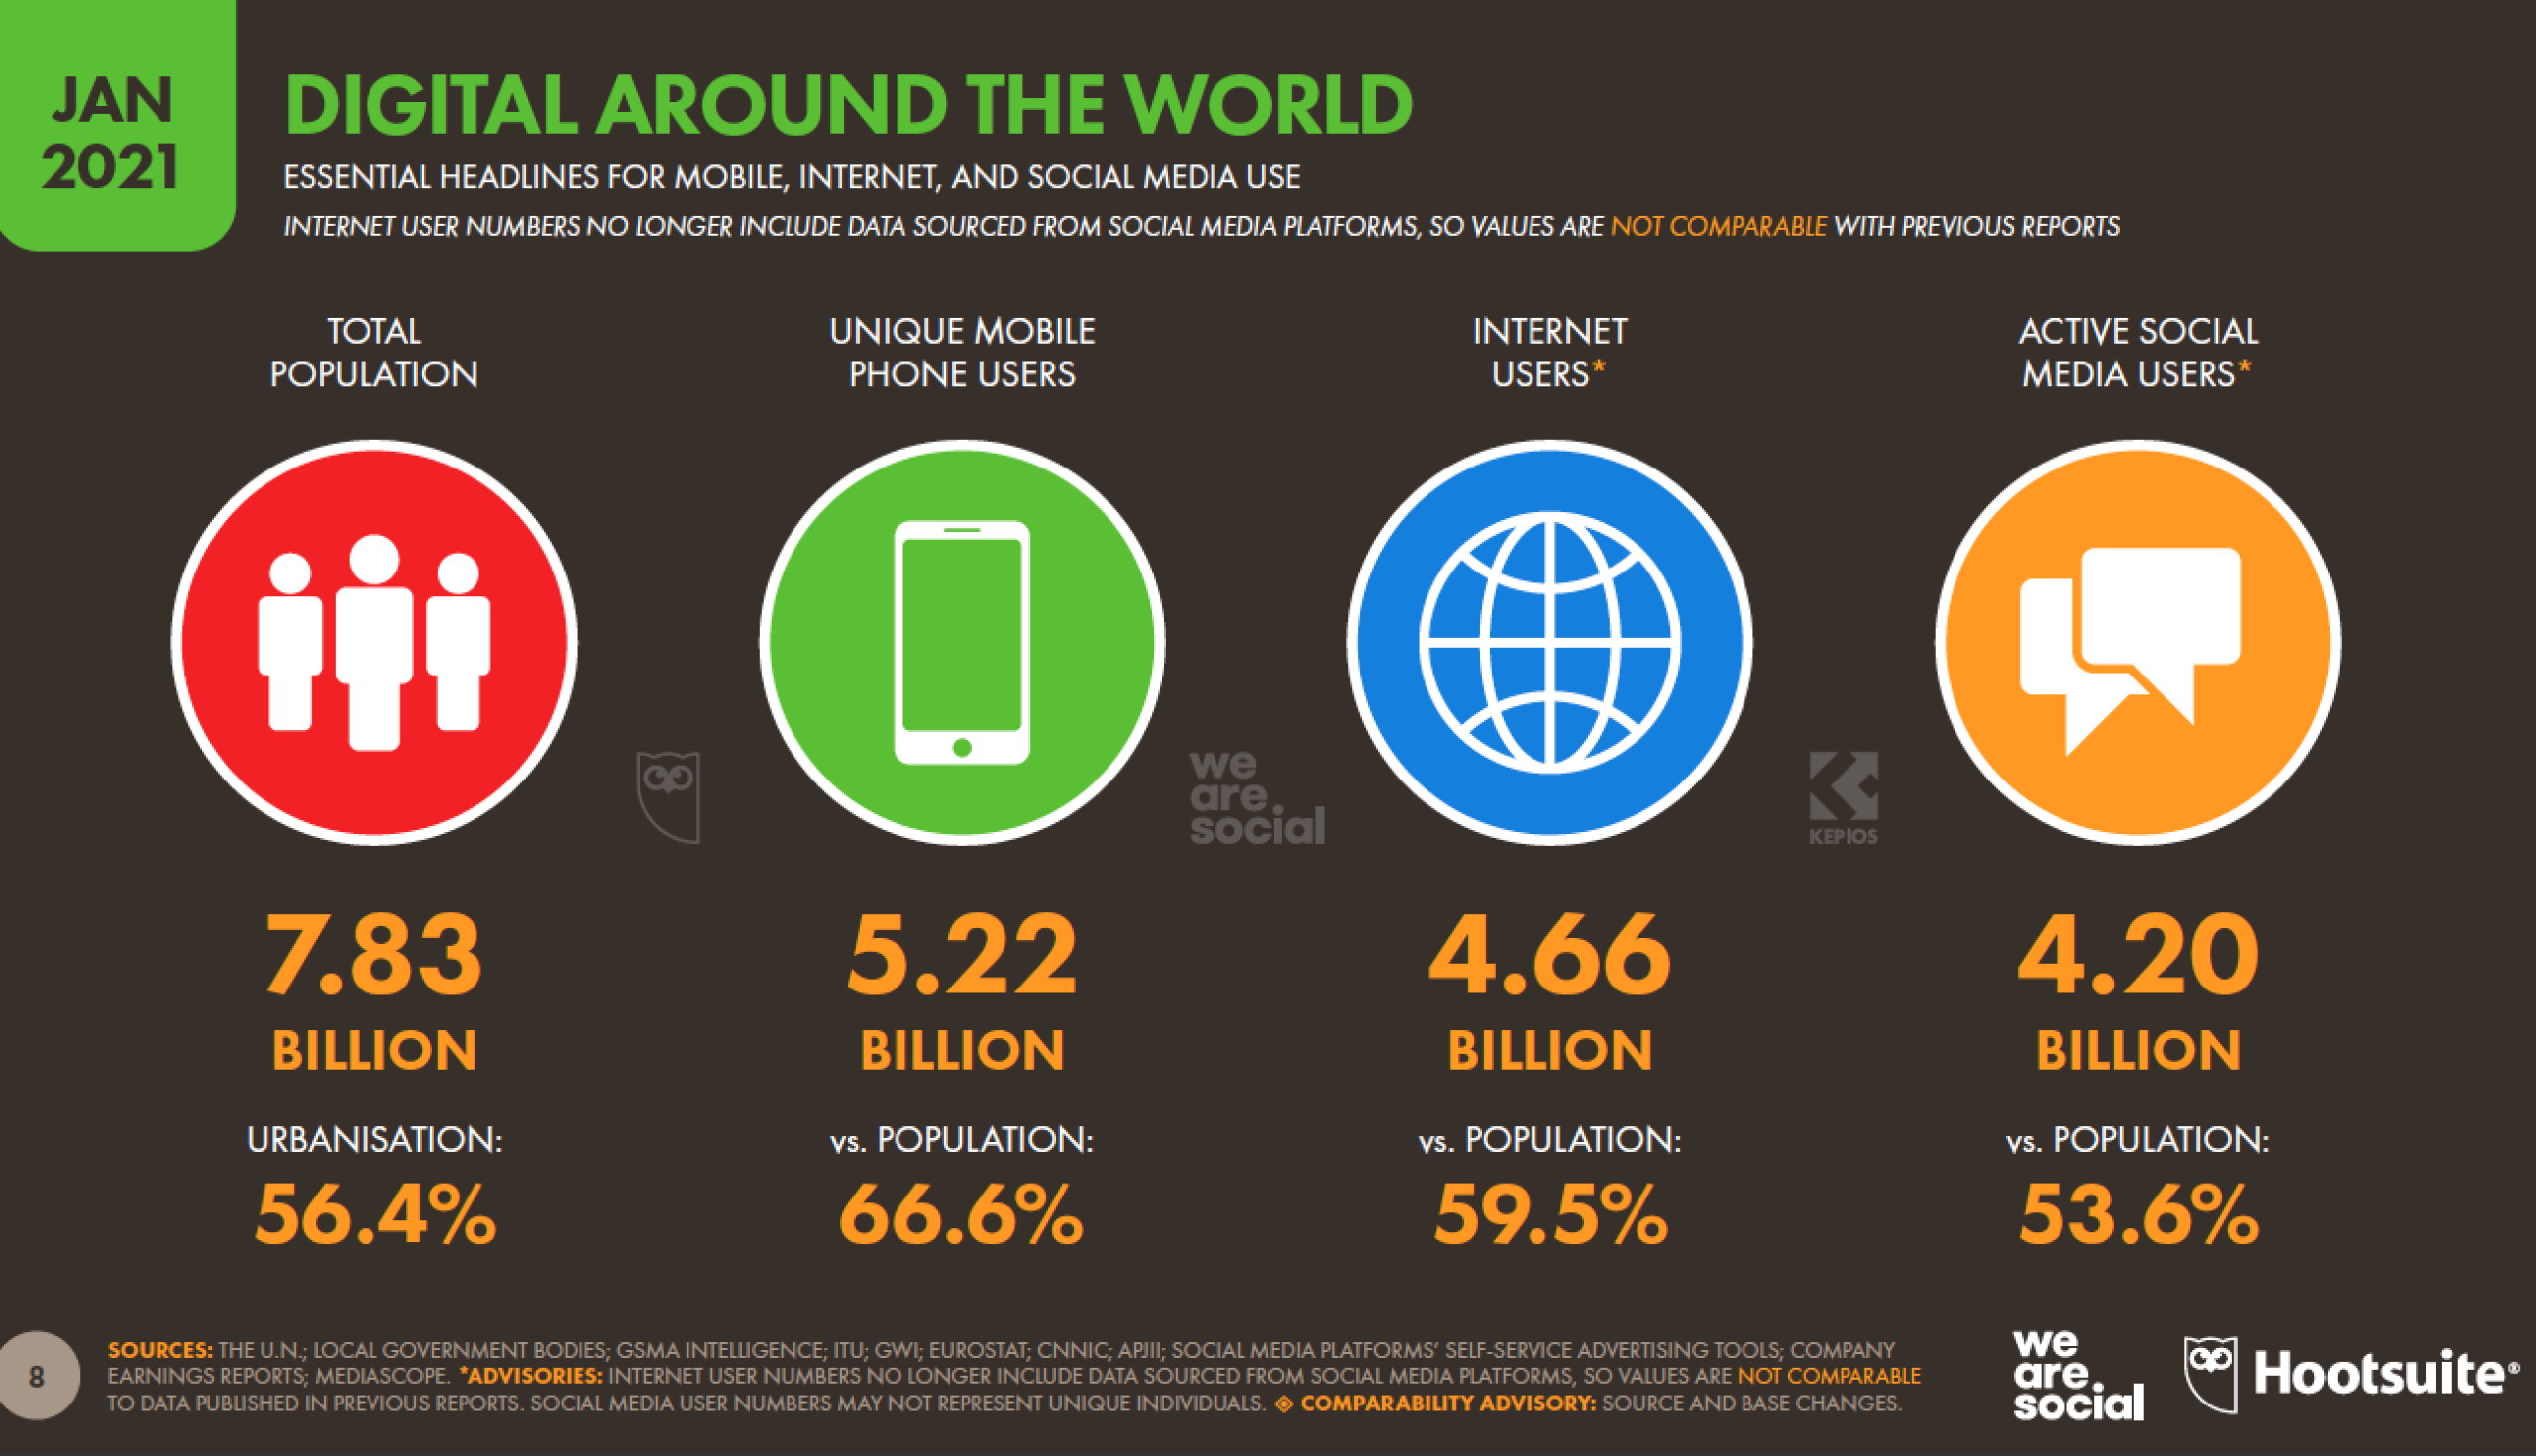 mobile, internet and social media use globally